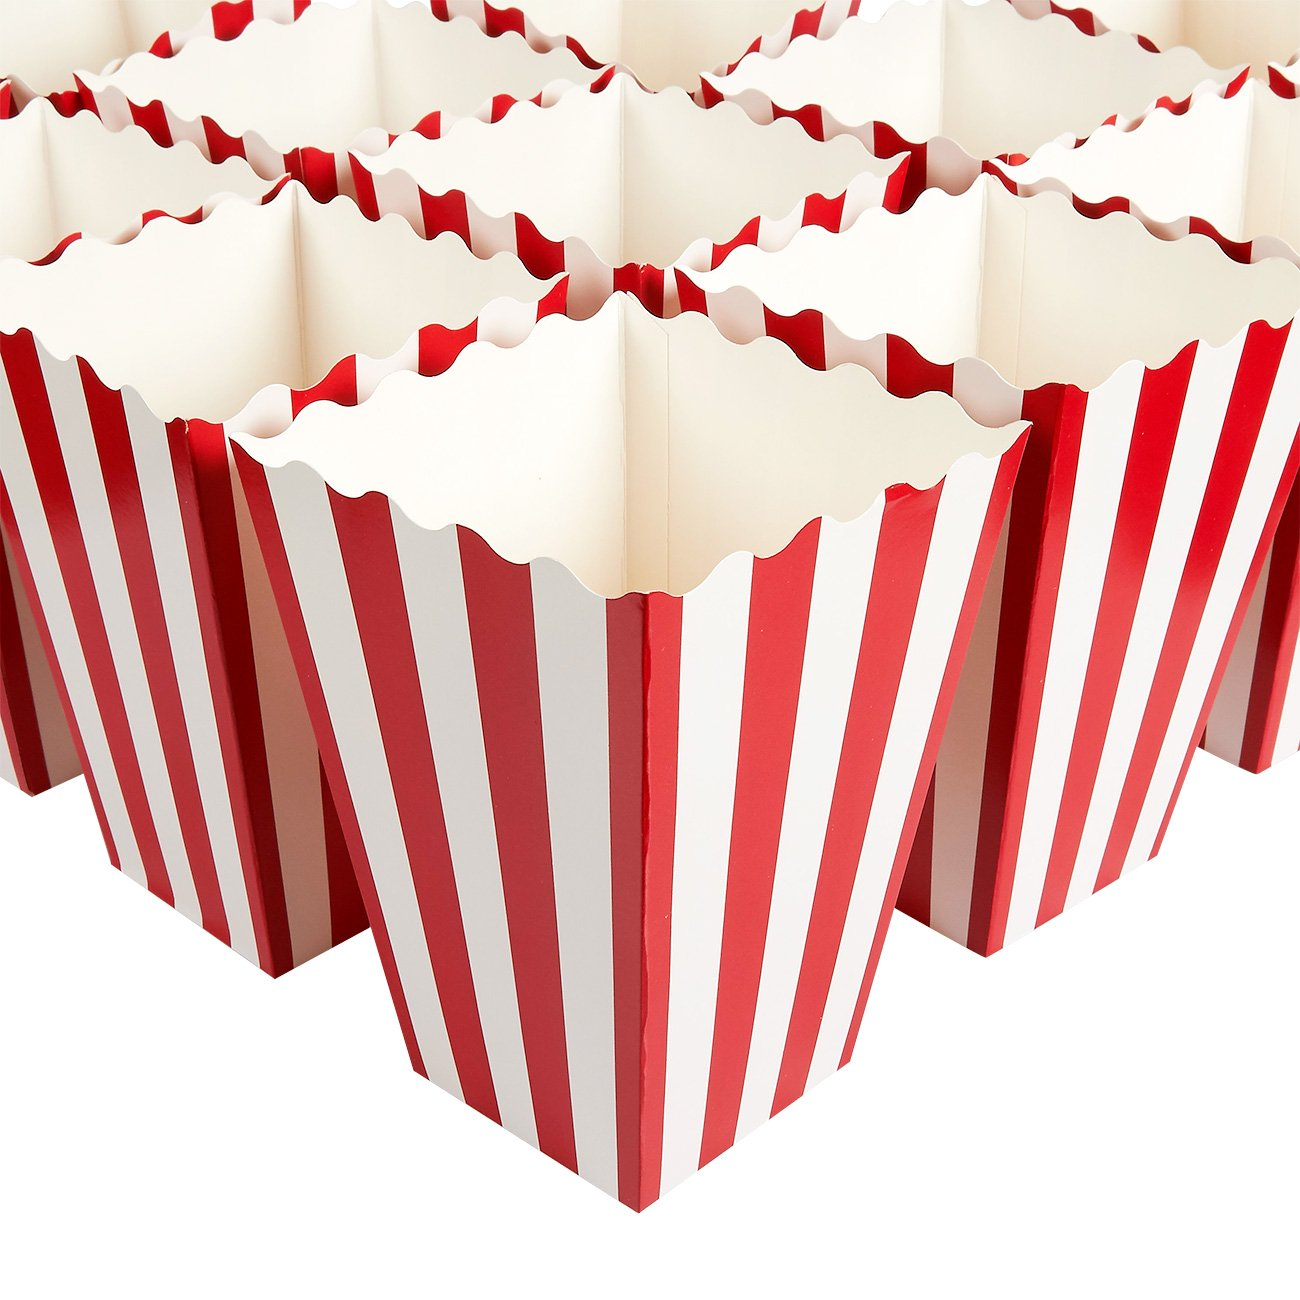 Set of 100 Popcorn Favor Boxes - Paper Popcorn Containers, Popcorn Party Supplies for Movie Nights, Movie-Themed Parties, Carnival Parties, Pirate Party, Red and White - 3.7 x 7.8 x 3.7 Inches by Blue Panda